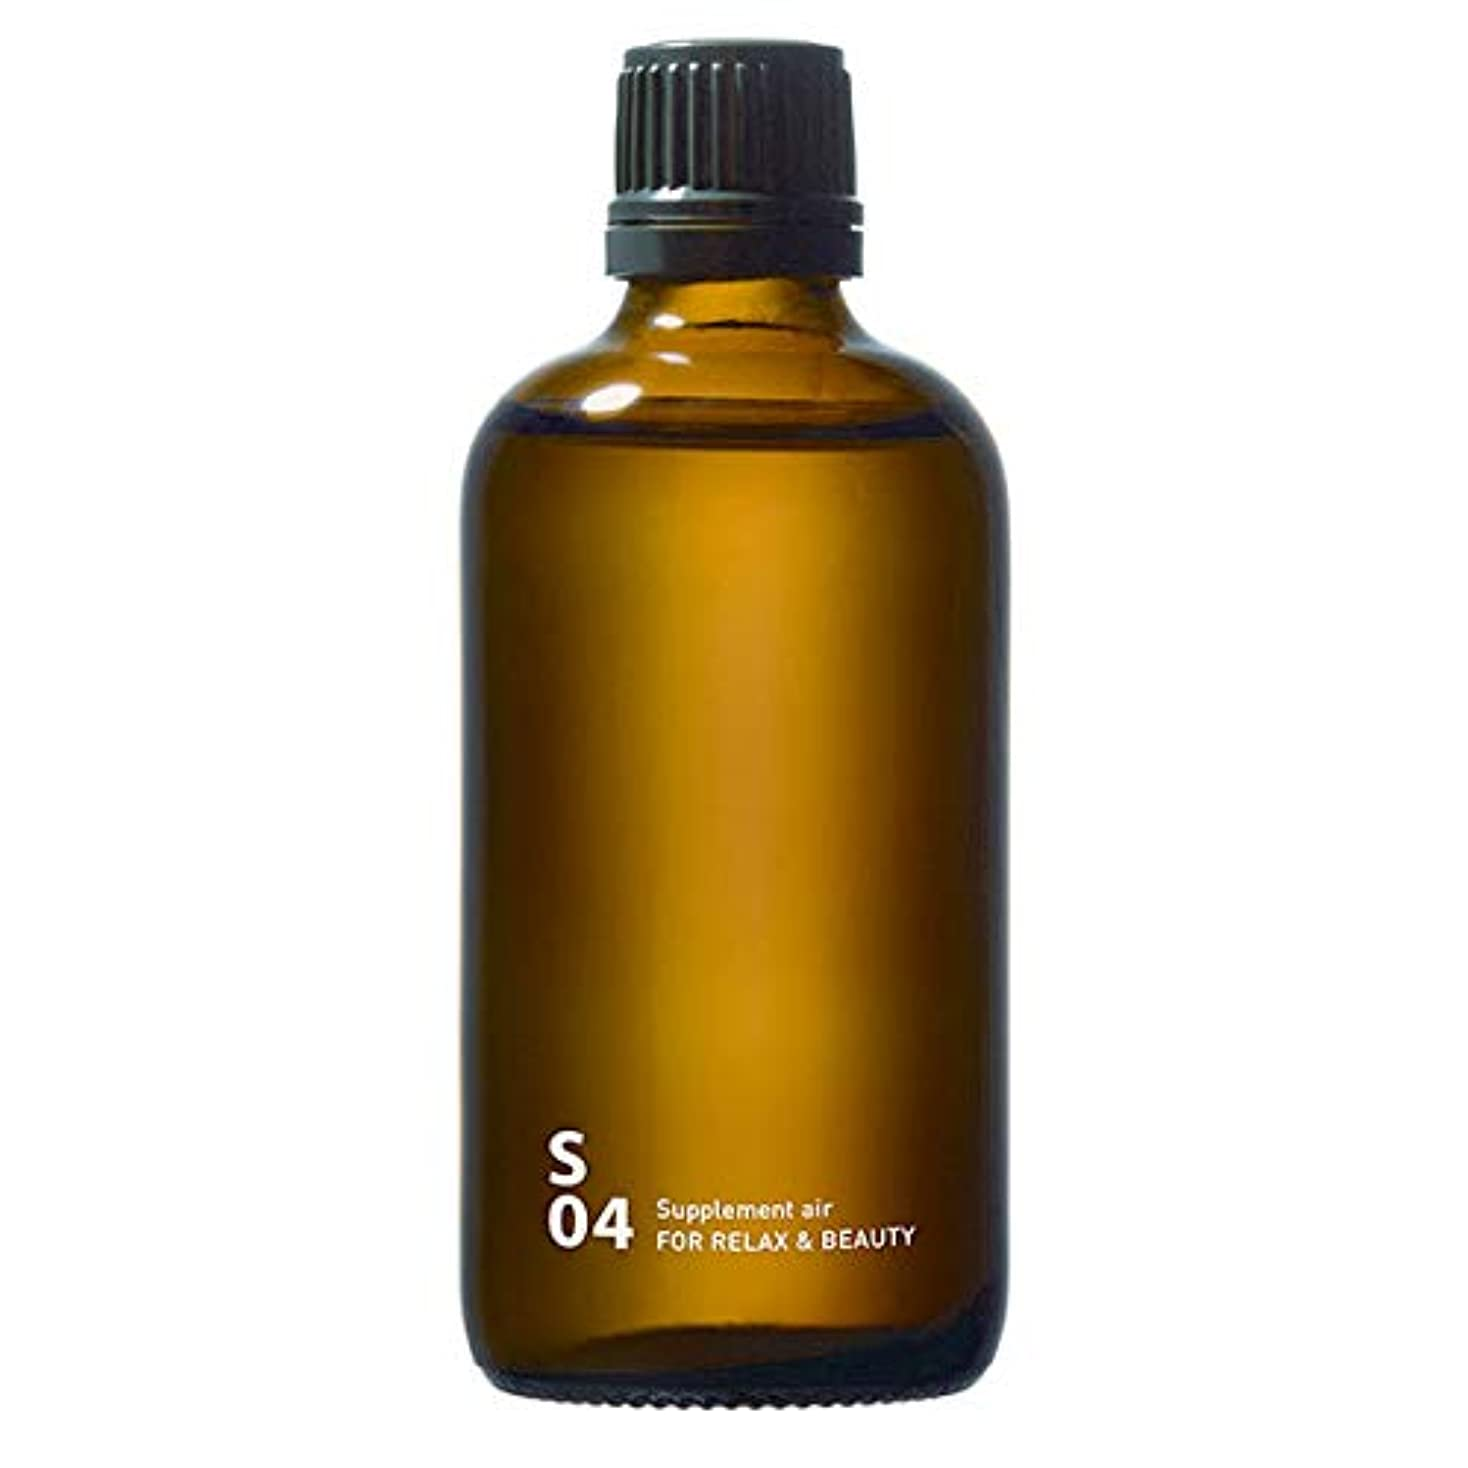 S04 FOR RELAX & BEAUTY piezo aroma oil 100ml